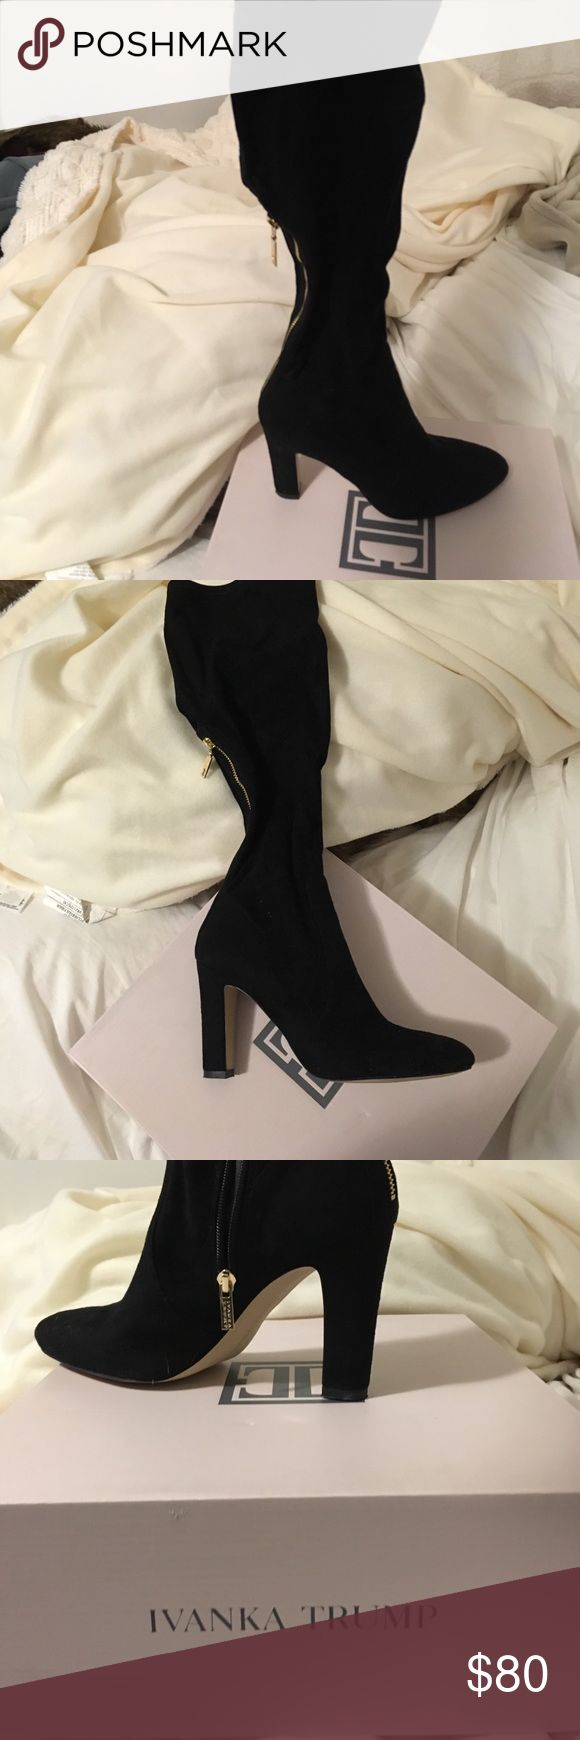 Ivanka Trump Black Suede Boots Ivanka Trump Black Suede Boots - New! Only worn around the house to try them on! Super cute gold zipper up the back - perfect for spring and fall! Ivanka Trump Shoes Heeled Boots